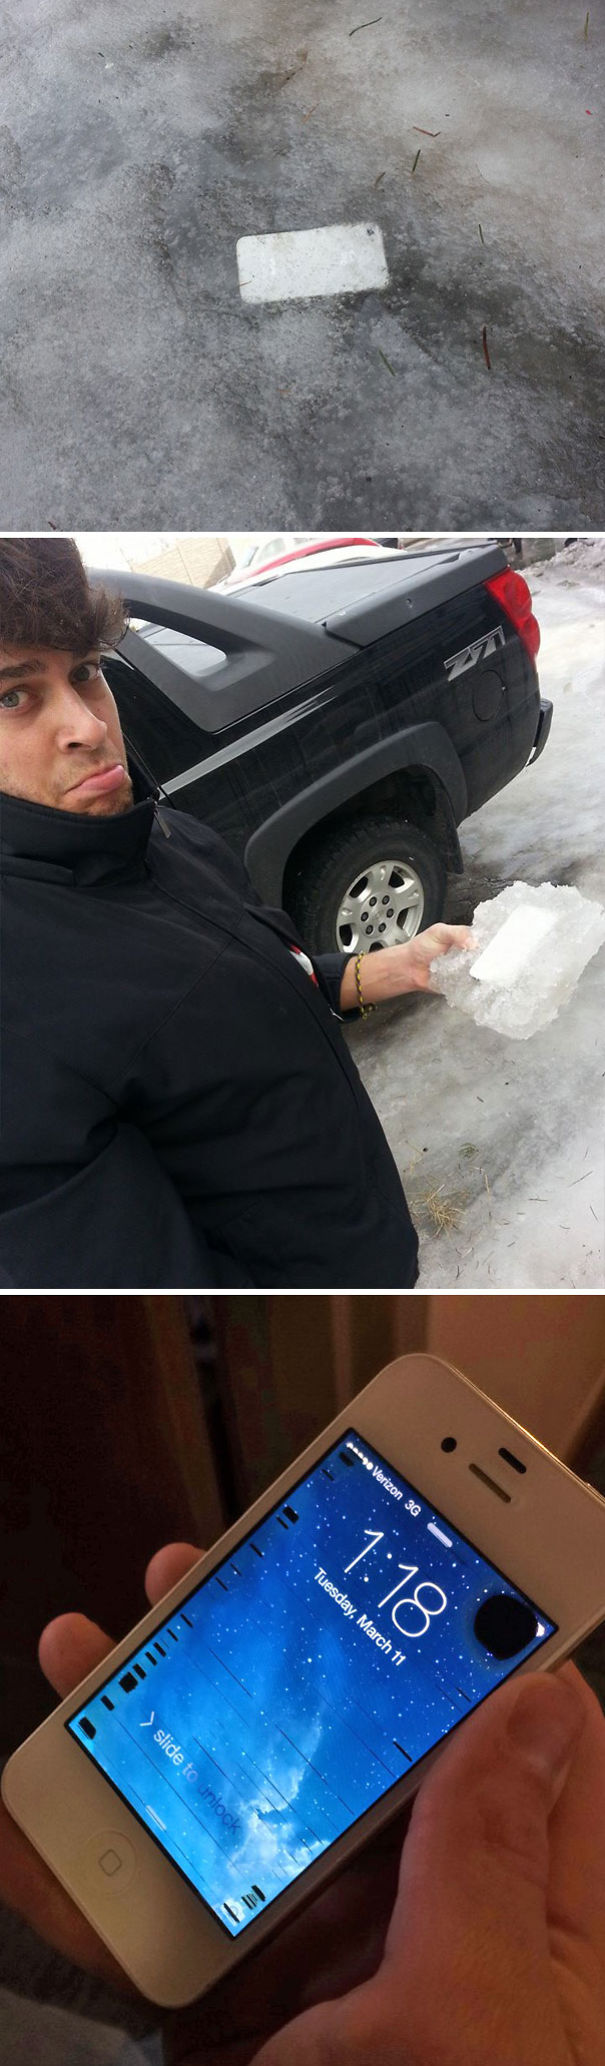 My Buddy Lost His iPhone In Early February And Just Found It, Frozen Into Our Driveway. And It Still Works!